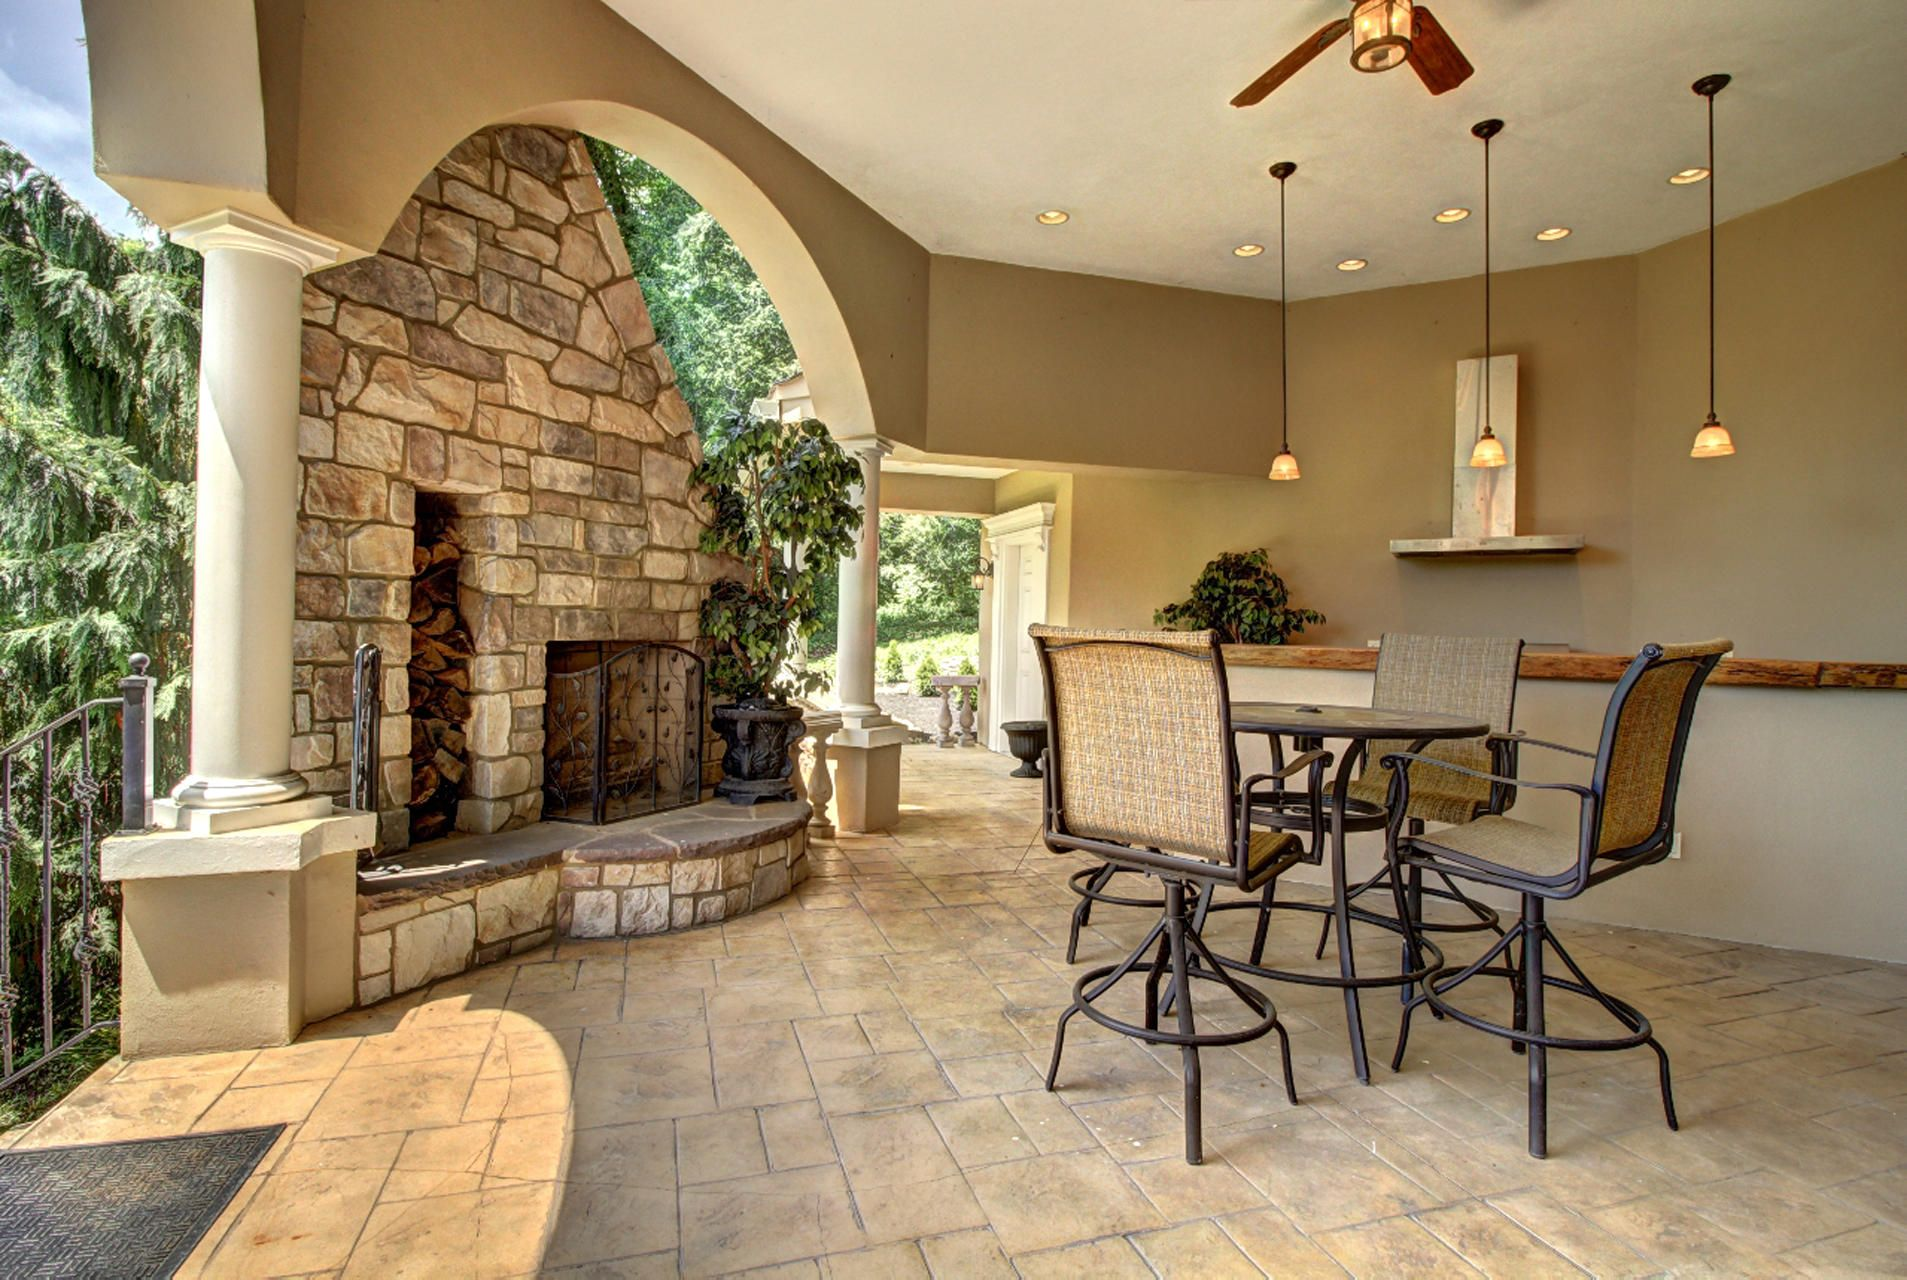 Outdoor Bar with Fireplace